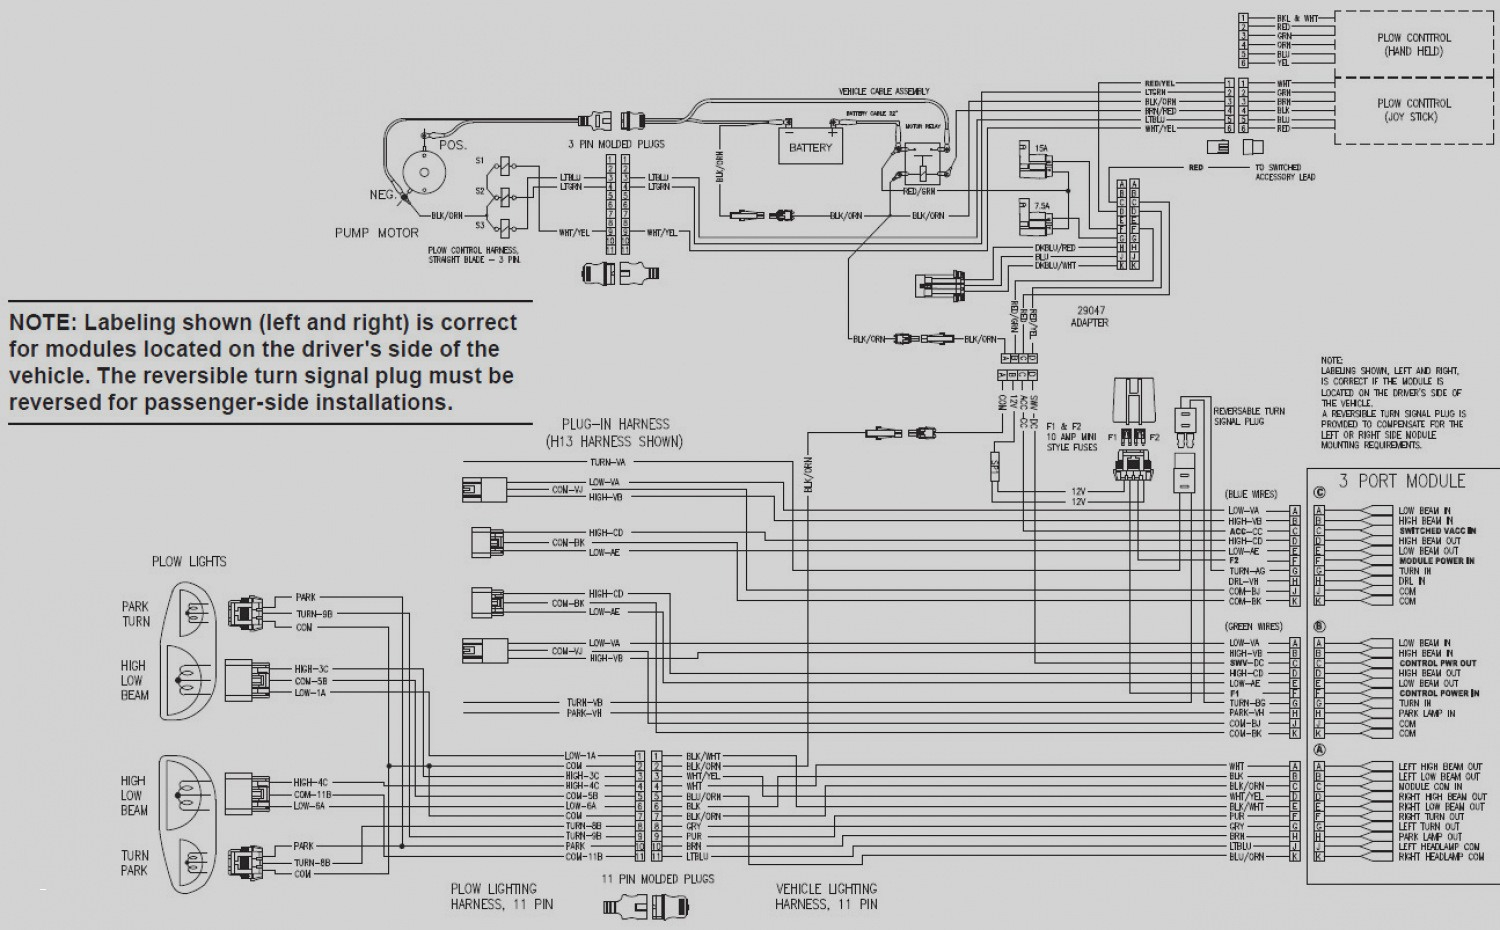 Snow Dog Plow Wiring Diagram | Wiring Diagram Fisher Plow Plug Wiring Diagram on fisher plow relay, fisher plow lights, fisher plow motor diagram, fisher snow plow manual, fisher snow plow controller, fisher plow solenoid diagram, fisher plow troubleshooting guide, fisher plow exploded view, western plow diagram, fisher plow accessories, moldboard plow diagram, fisher plow installation diagram, fisher speaker diagram, fisher plow parts, boss plow parts diagram, circuit diagram, fisher plow owners manual, fisher plow repair manual, fisher plow flow diagram, fisher plow electrical diagram,